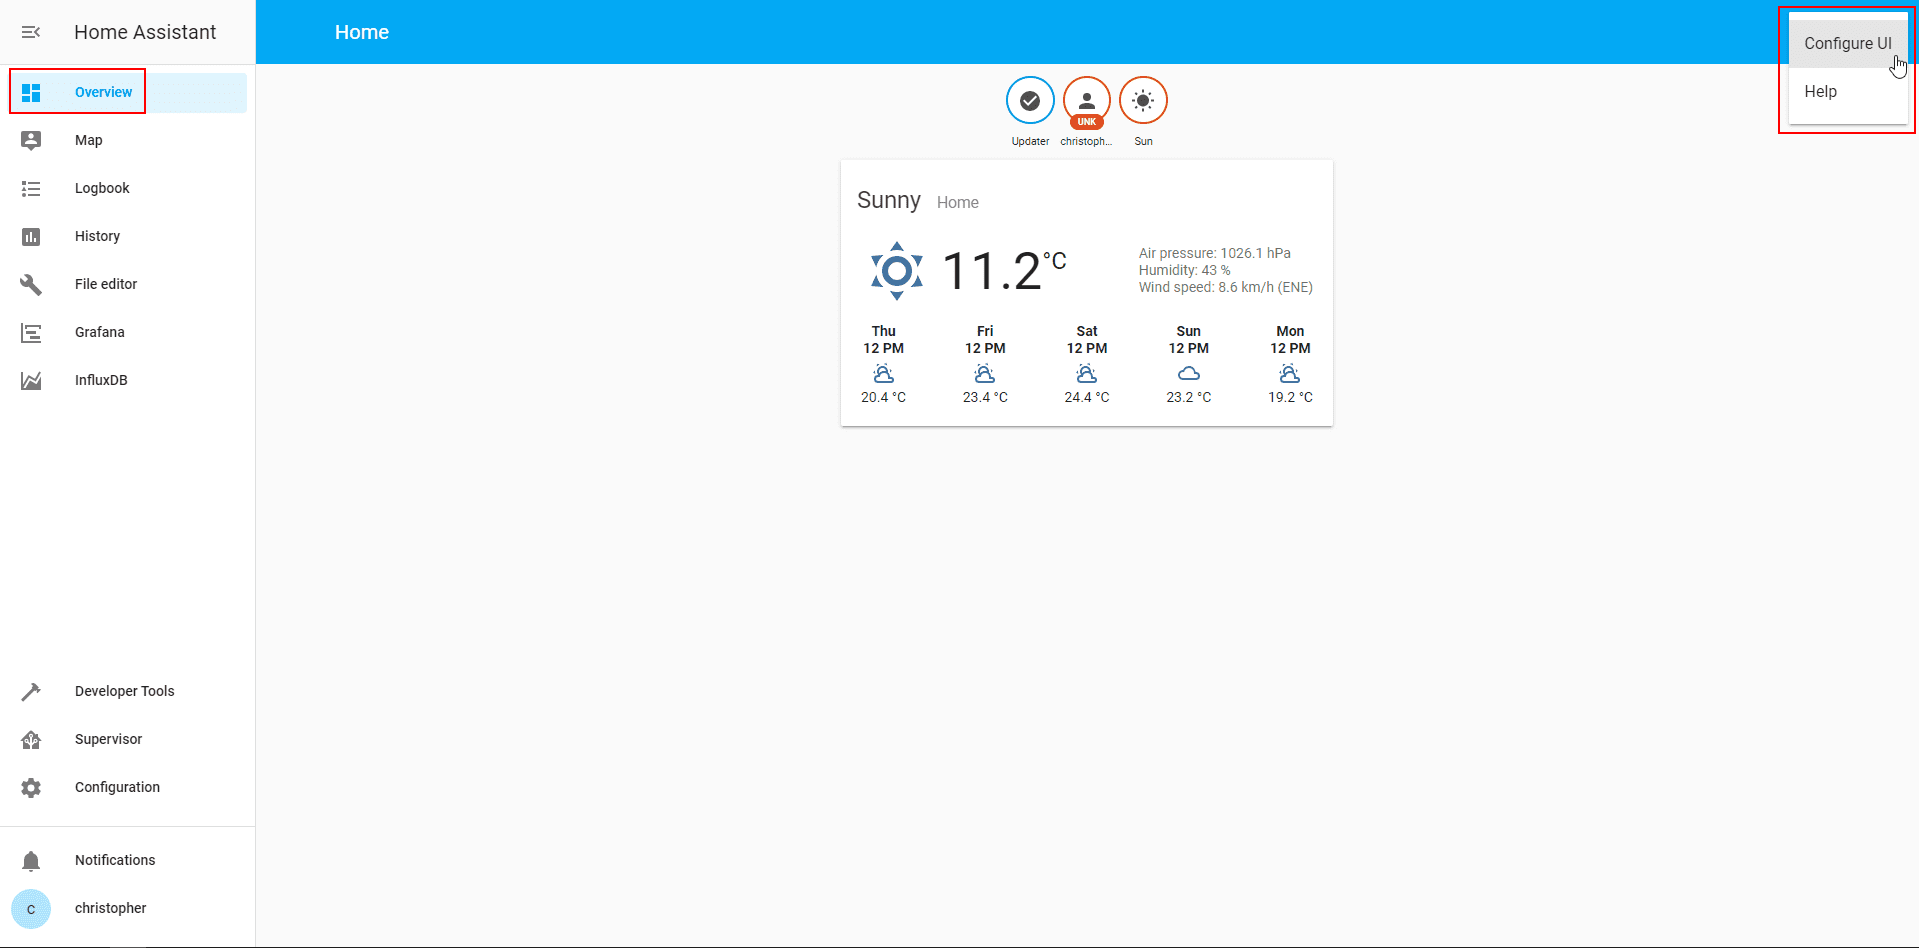 Home Assistant UI 1